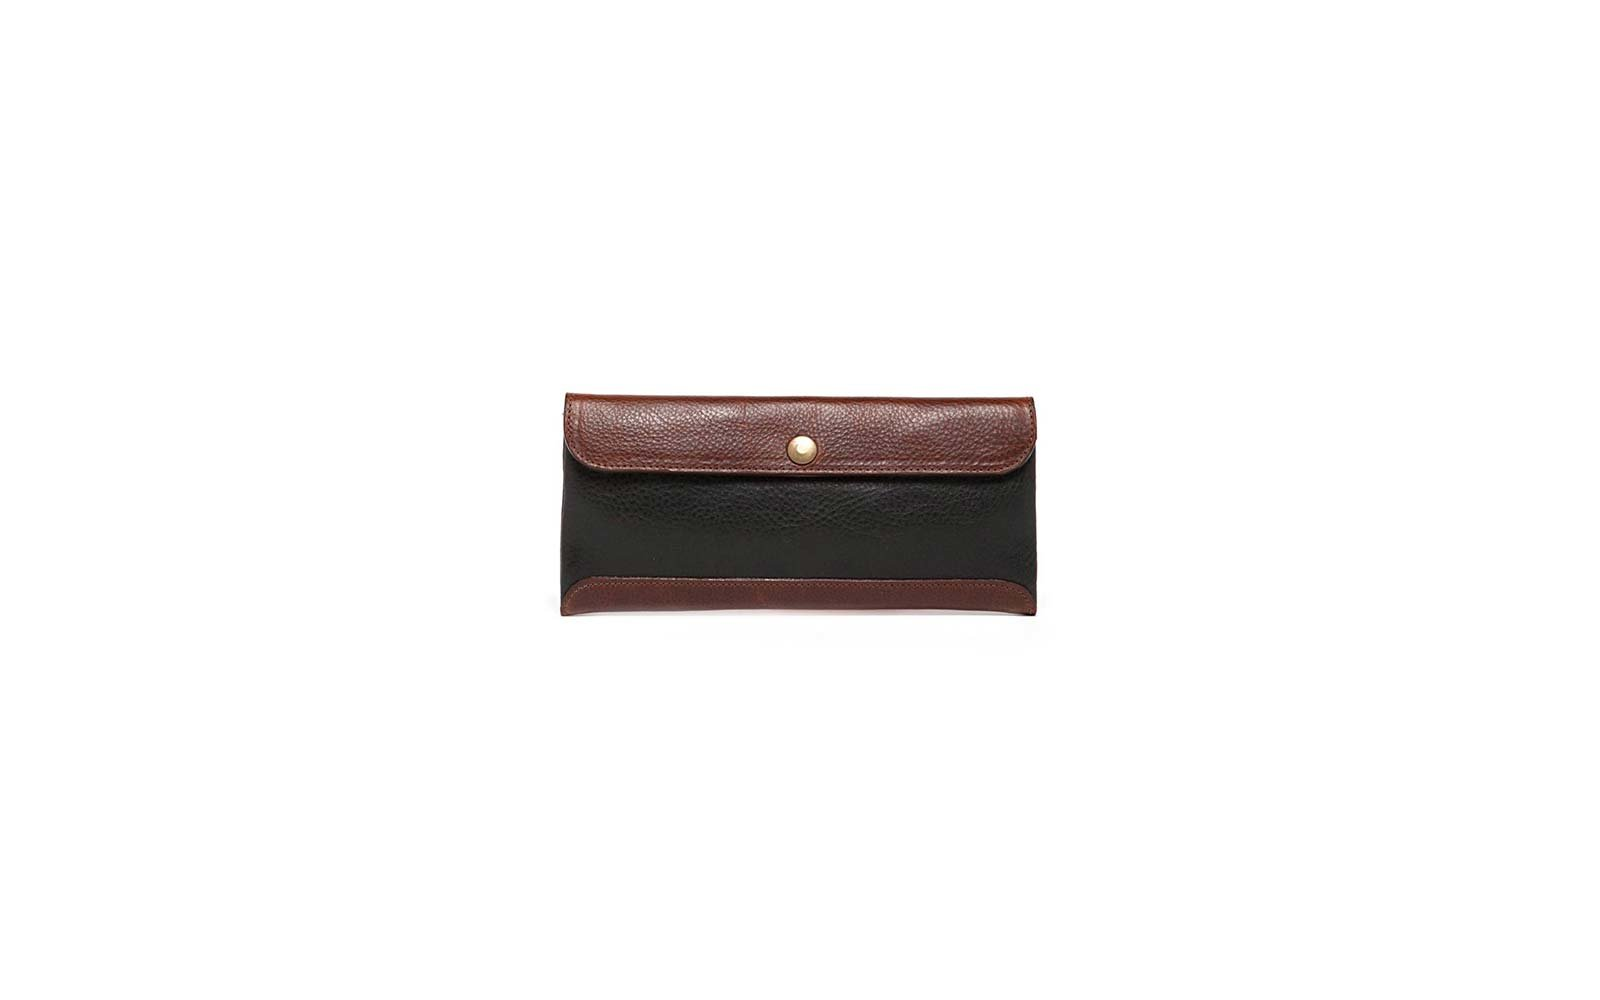 The Best Travel Wallets Leisure D Island Shoes Slip On Zipper Wrinkle Leather Black Moore Giles Smith Envelope